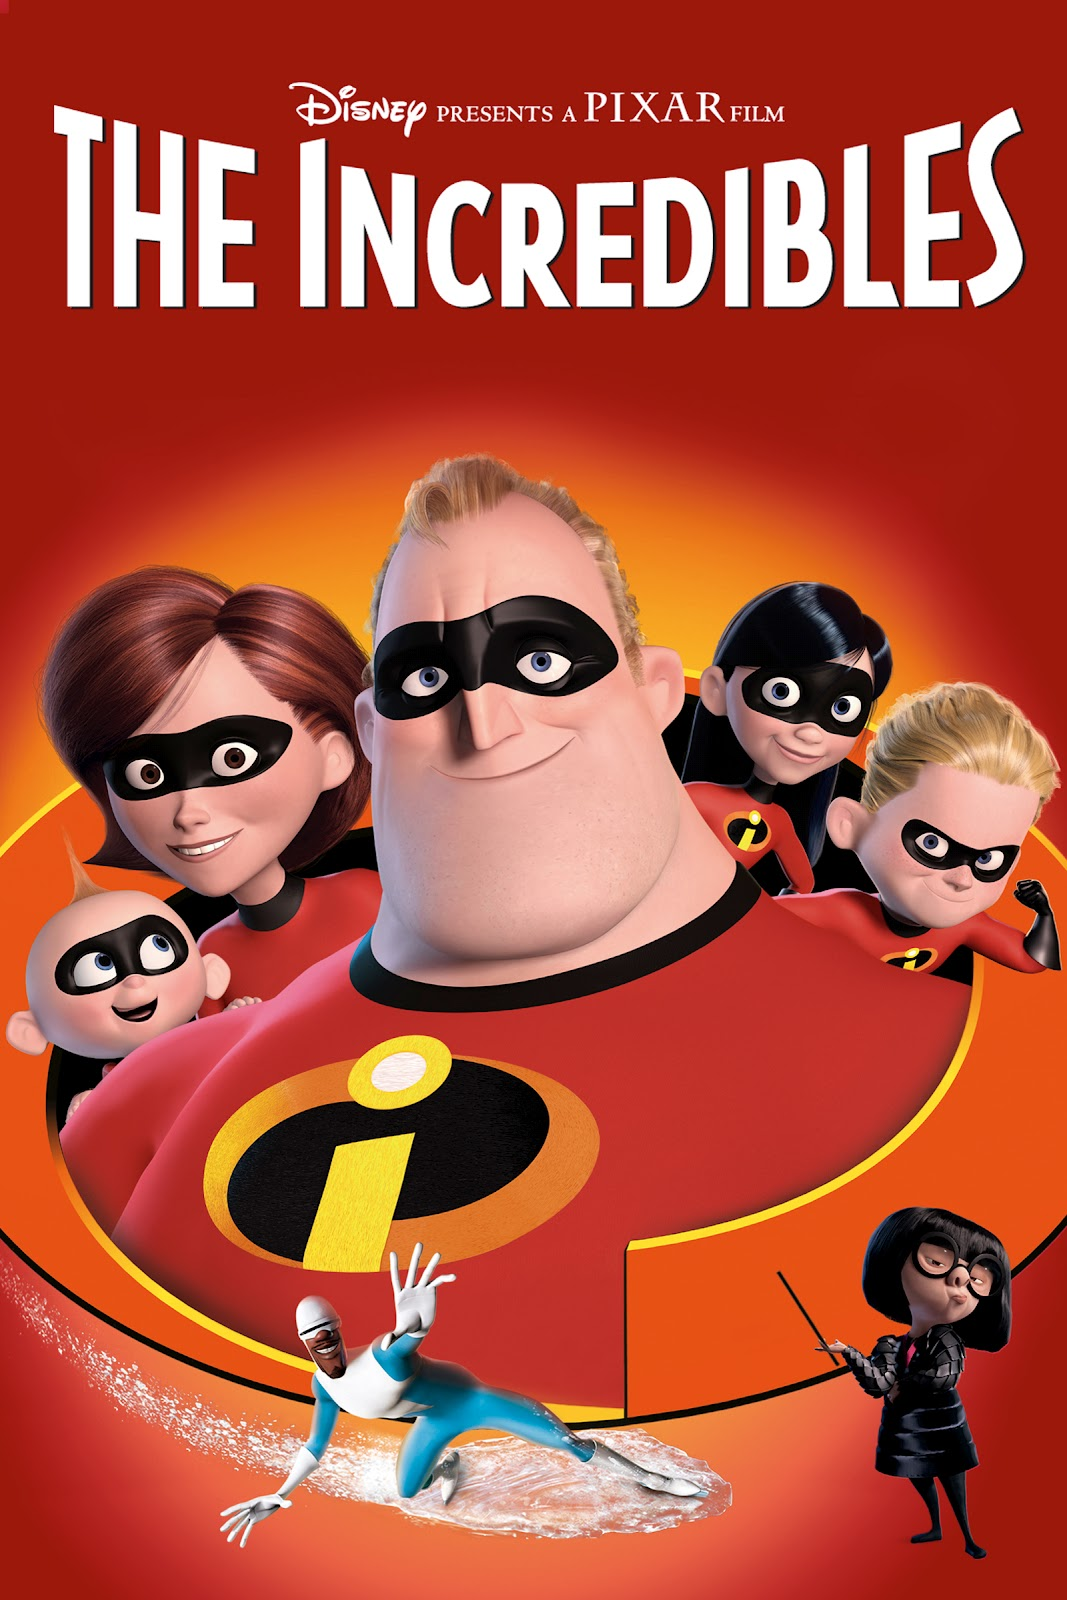 Incredibals the movie